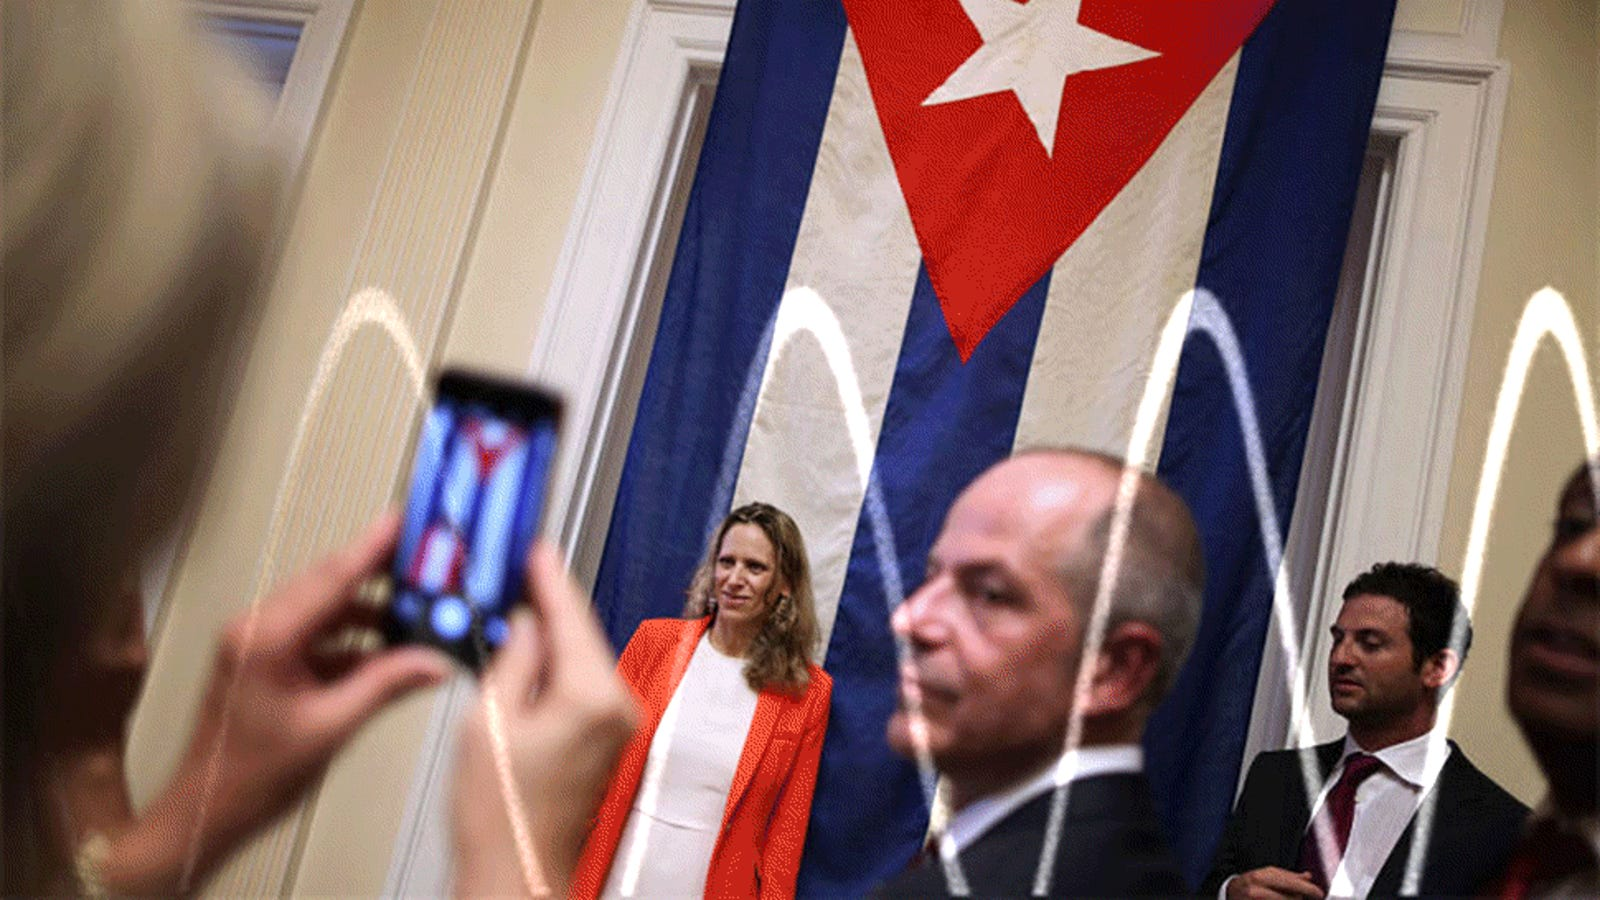 The Case of a Brain-Damaging 'Sonic Weapon' in Cuba Is Only Getting